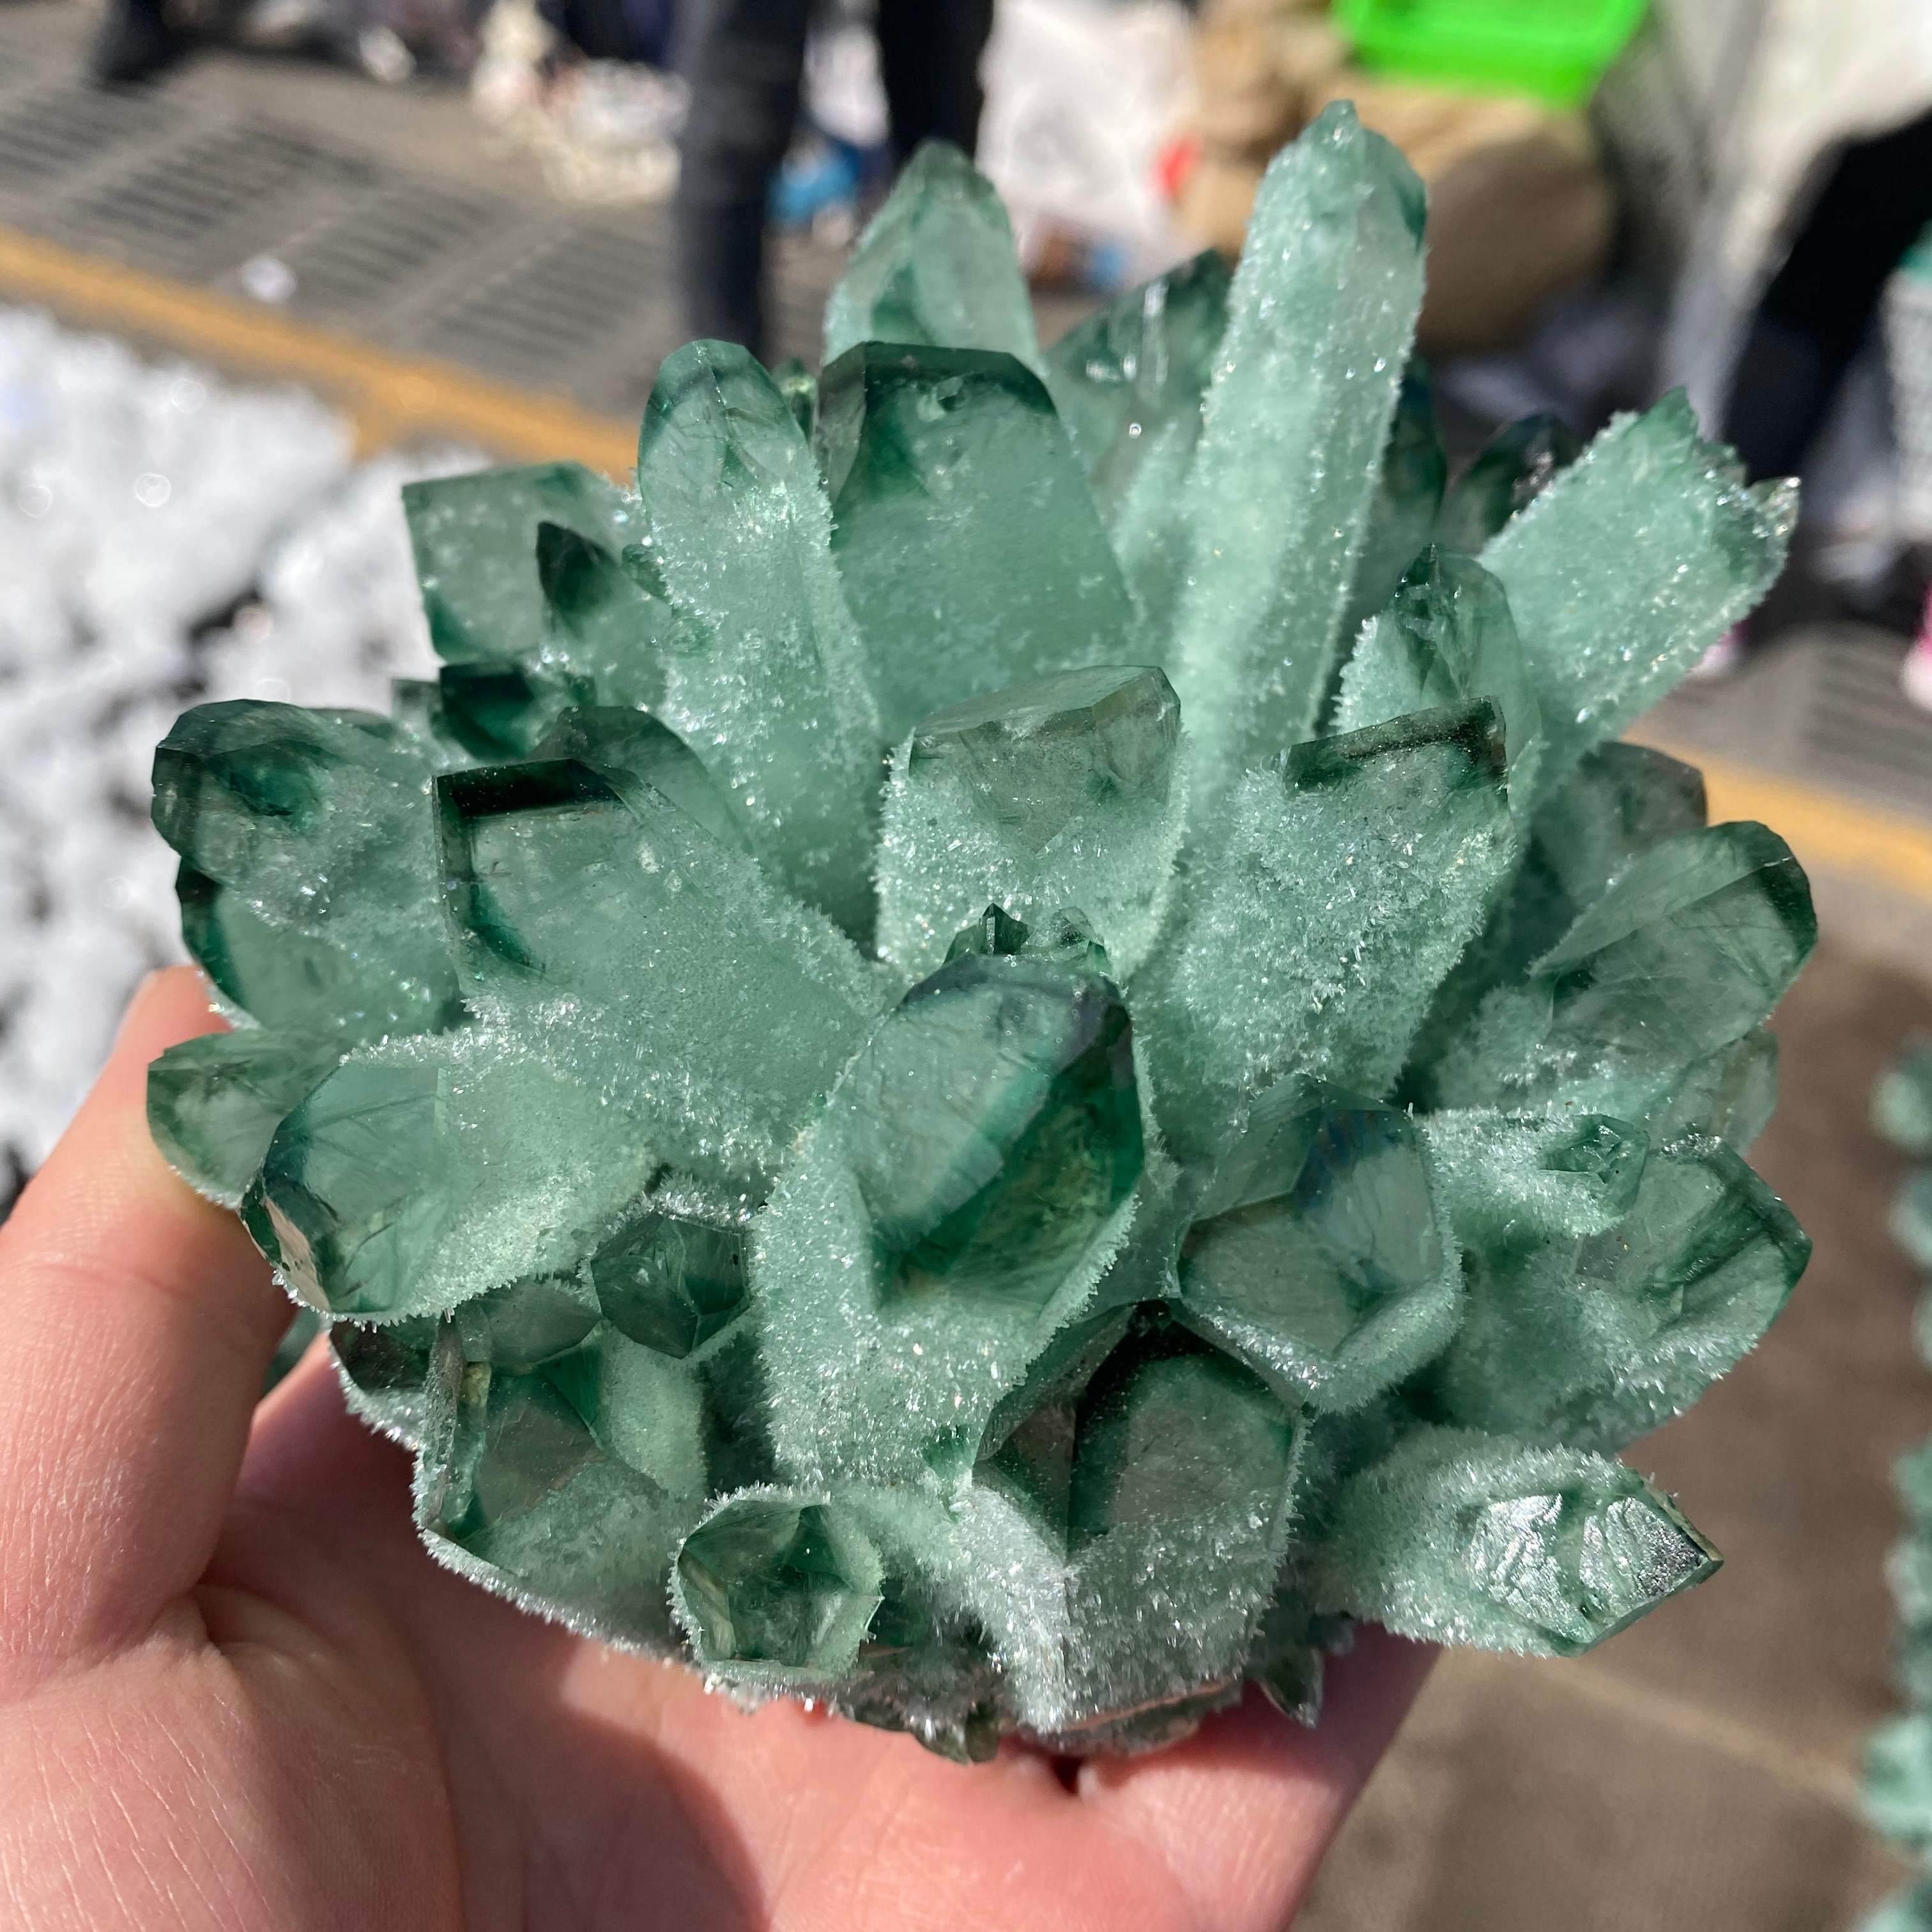 300-800g  natural green ghost quartz crystal cluster healing crystals raw gemstone specimen for home&office decoration fengshui